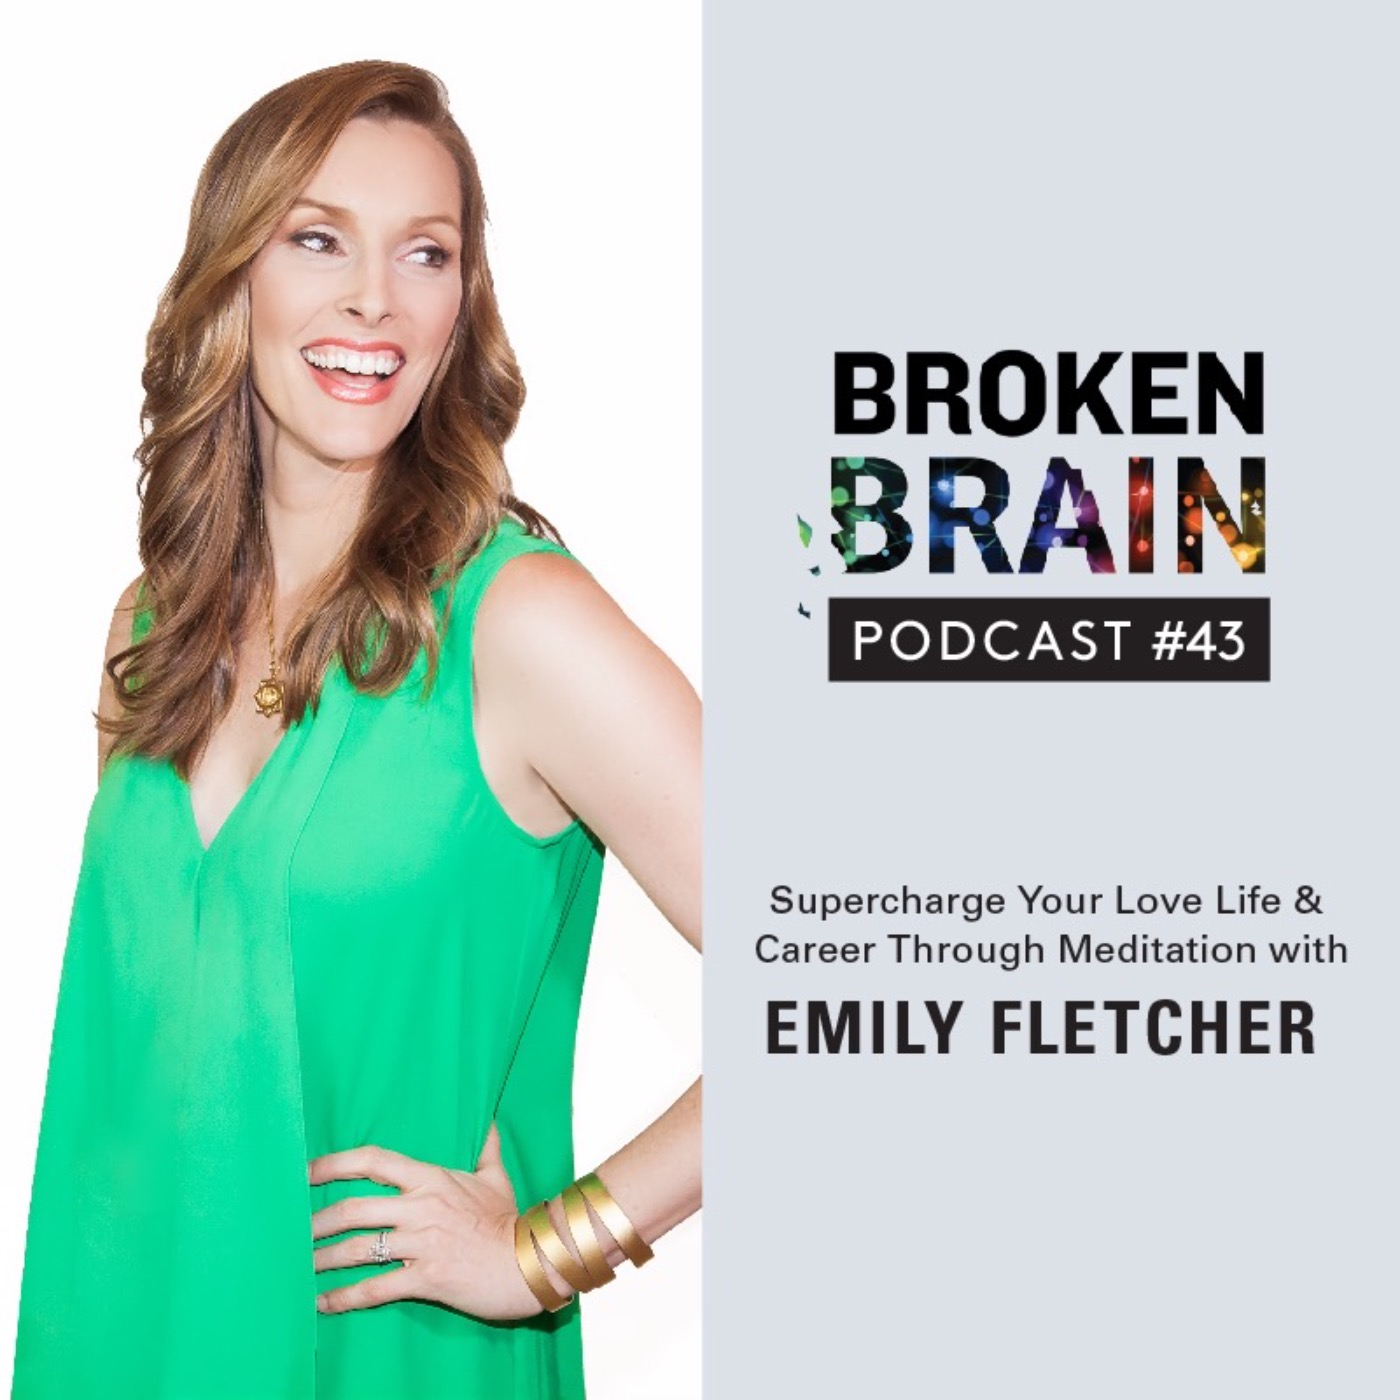 #43: Supercharge Your Love Life & Career Through Meditation with Emily Fletcher